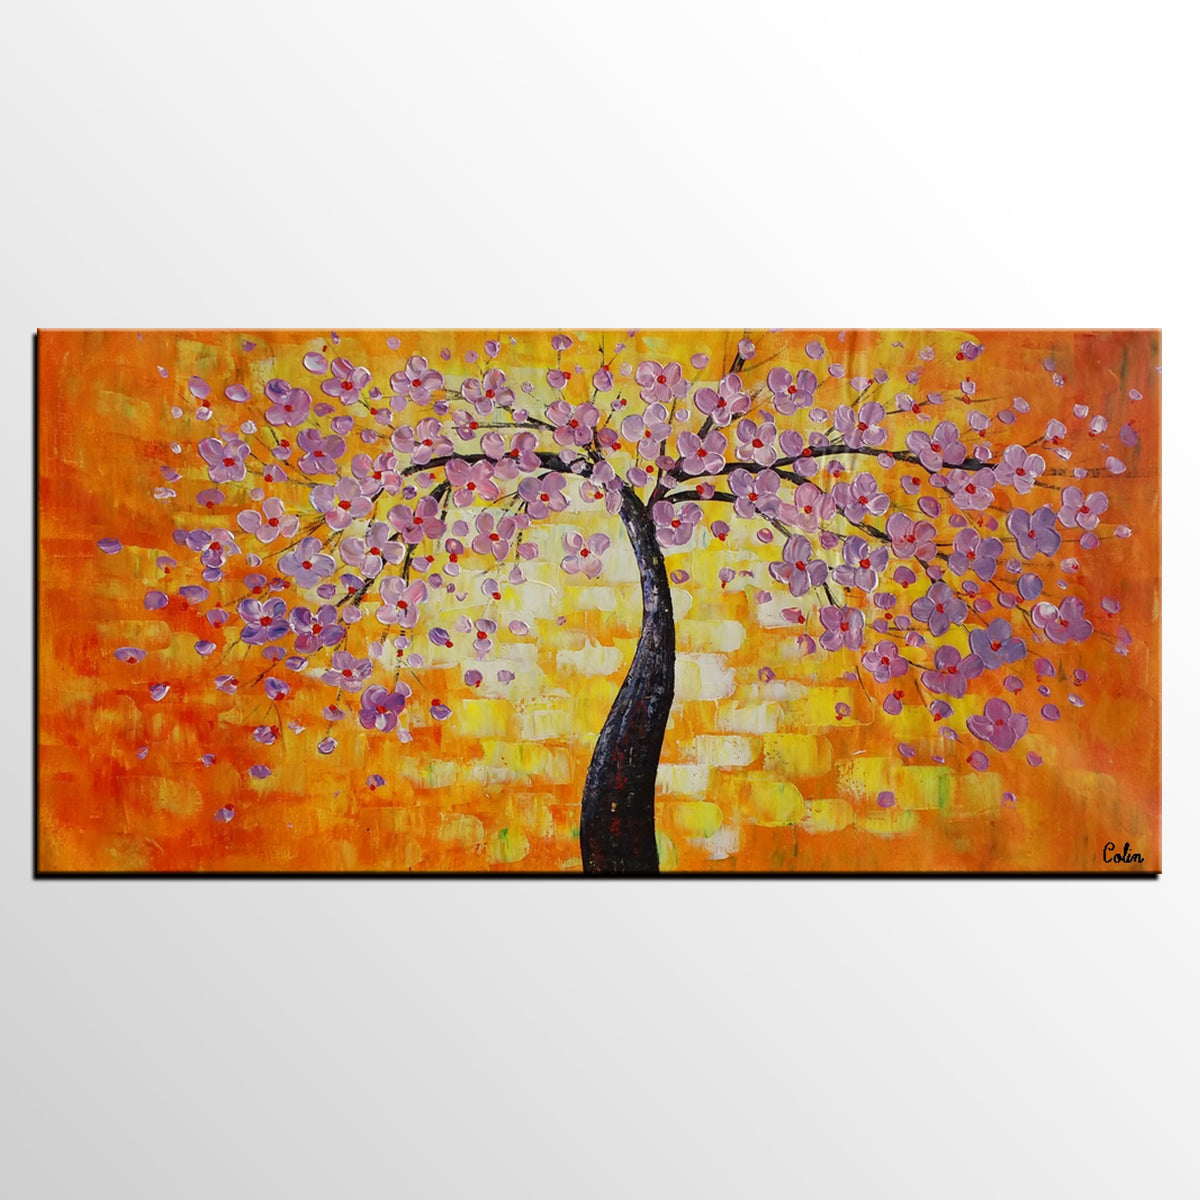 Floral Painting, Flower Tree Painting, Abst...